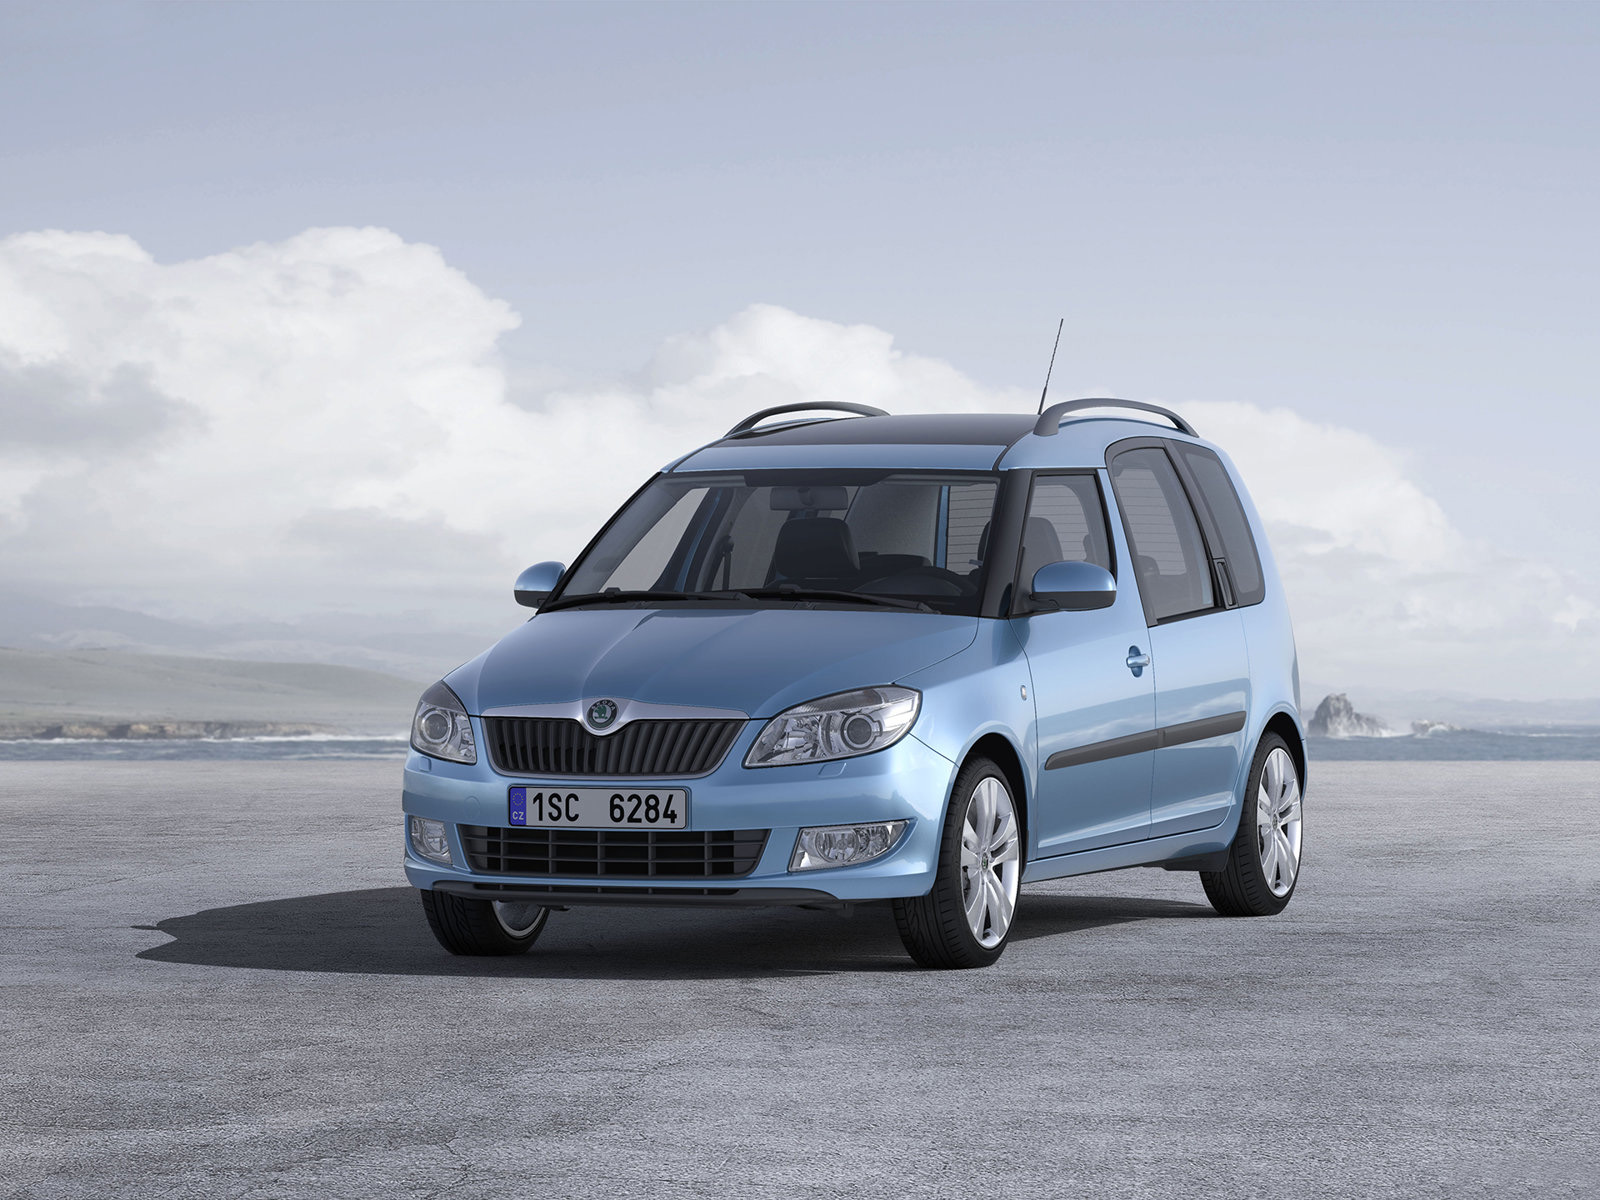 2011 skoda roomster scout xxi century cars. Black Bedroom Furniture Sets. Home Design Ideas